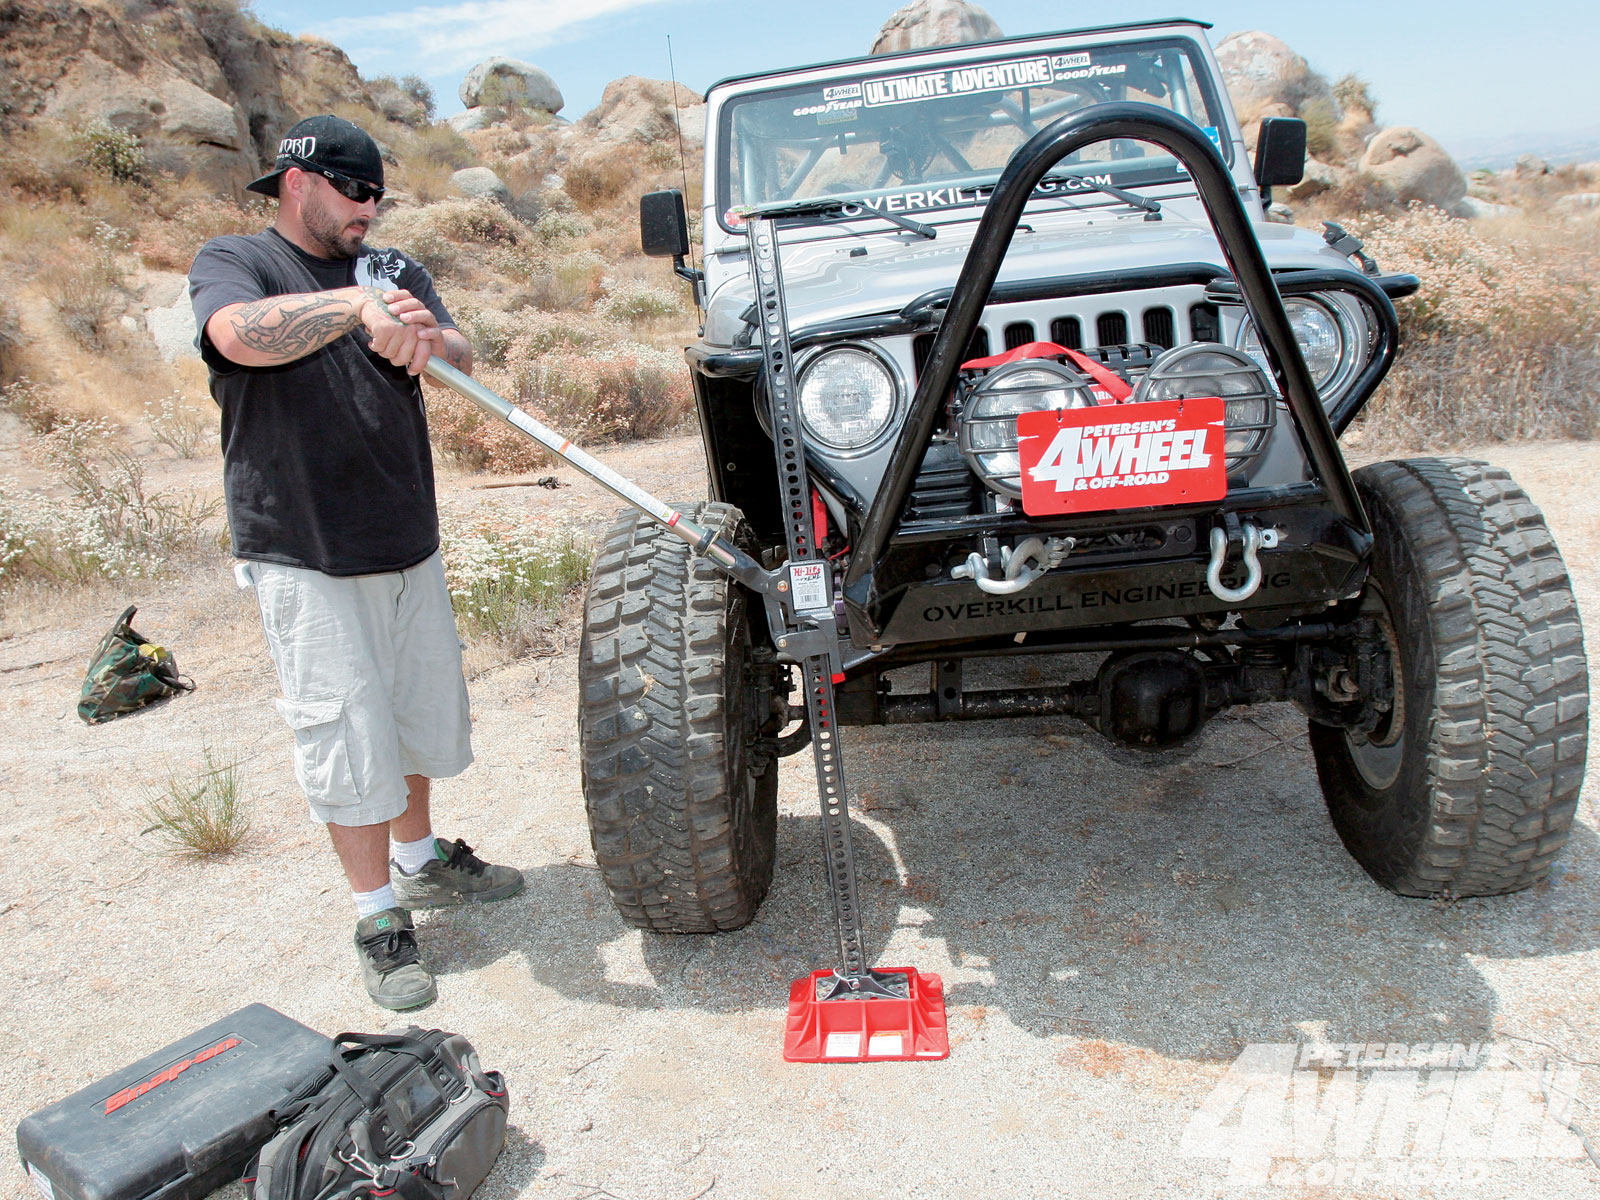 Before tearing into the axle, place the vehicle on level ground and off the trail. When using a Hi-Lift jack in sand and dirt, we always recommend using the off-road base since it provides more stability. A floor jack or scissors jack are another option if available.